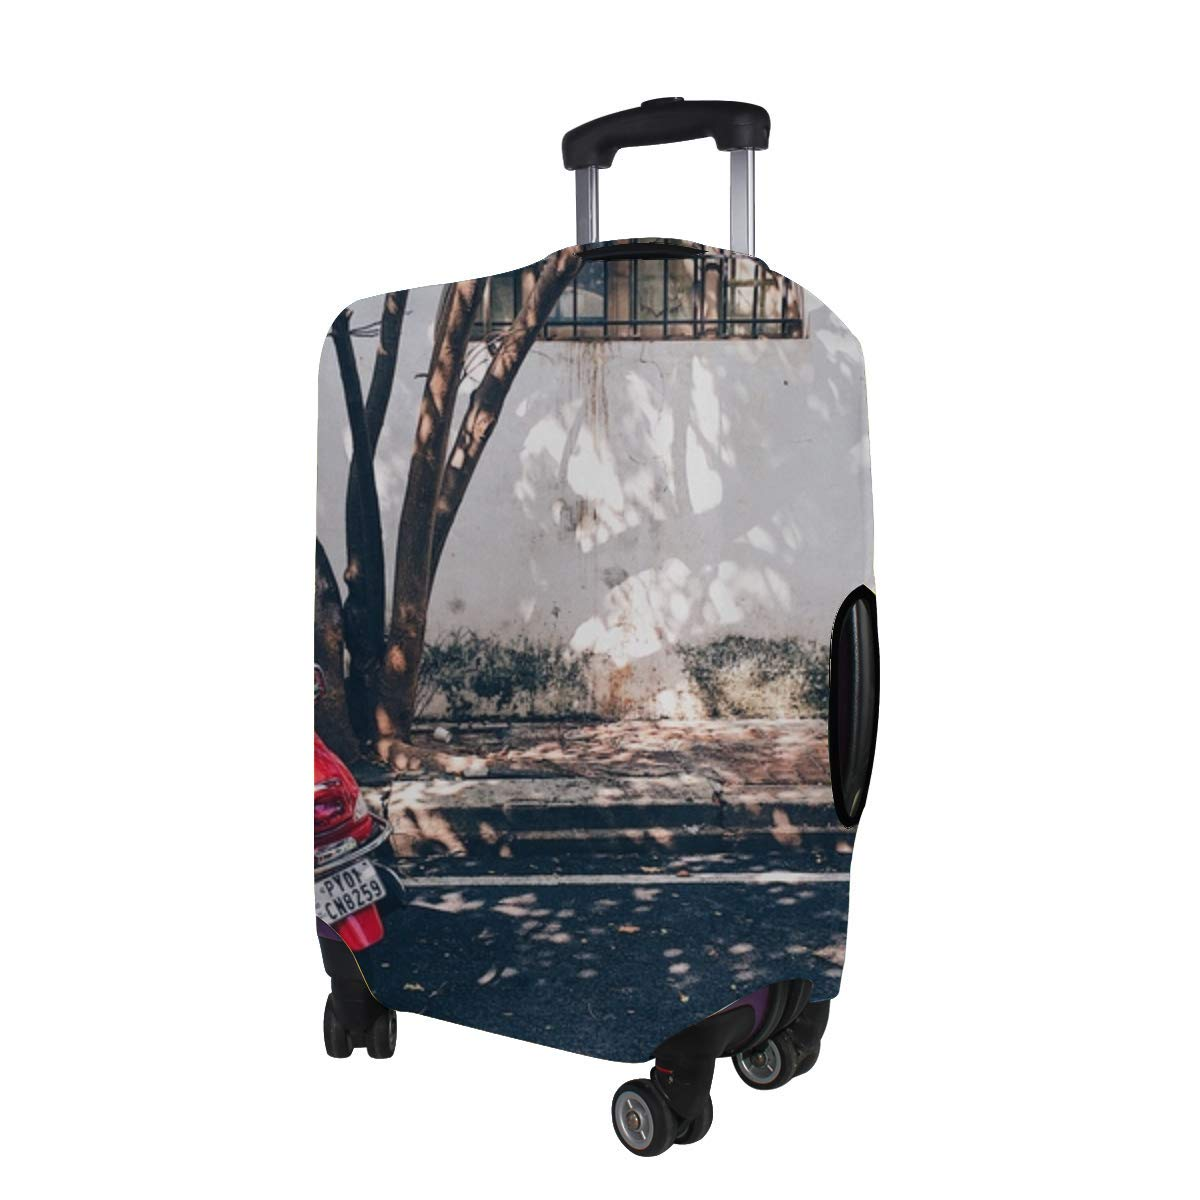 Scooter Moped Street Shadow Pattern Print Travel Luggage Protector Baggage Suitcase Cover Fits 18-21 Inch Luggage